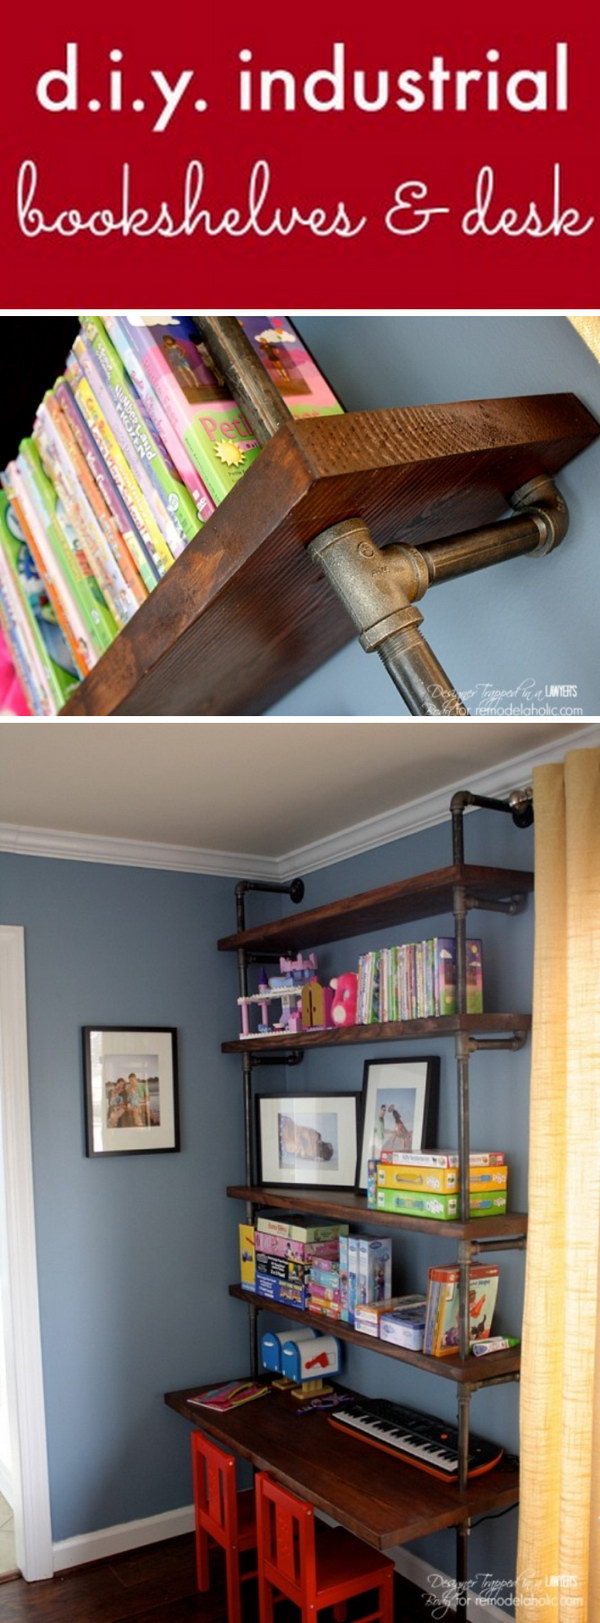 DIY Industrial Pipe Shelves and Desk.